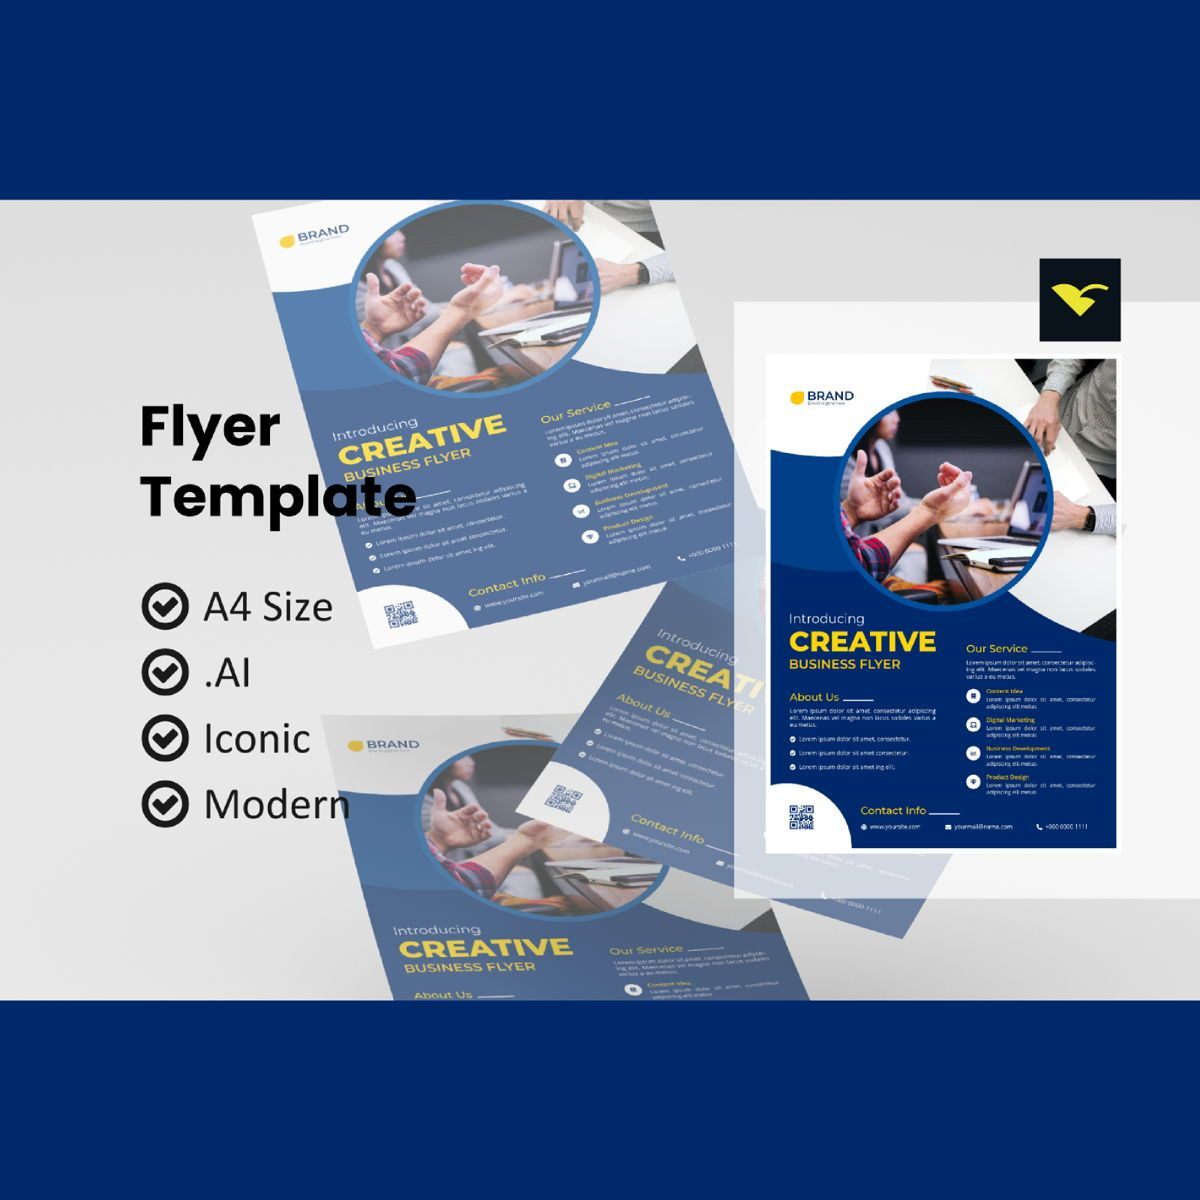 Creative business flyer template, 08972, Business — PoweredTemplate.com